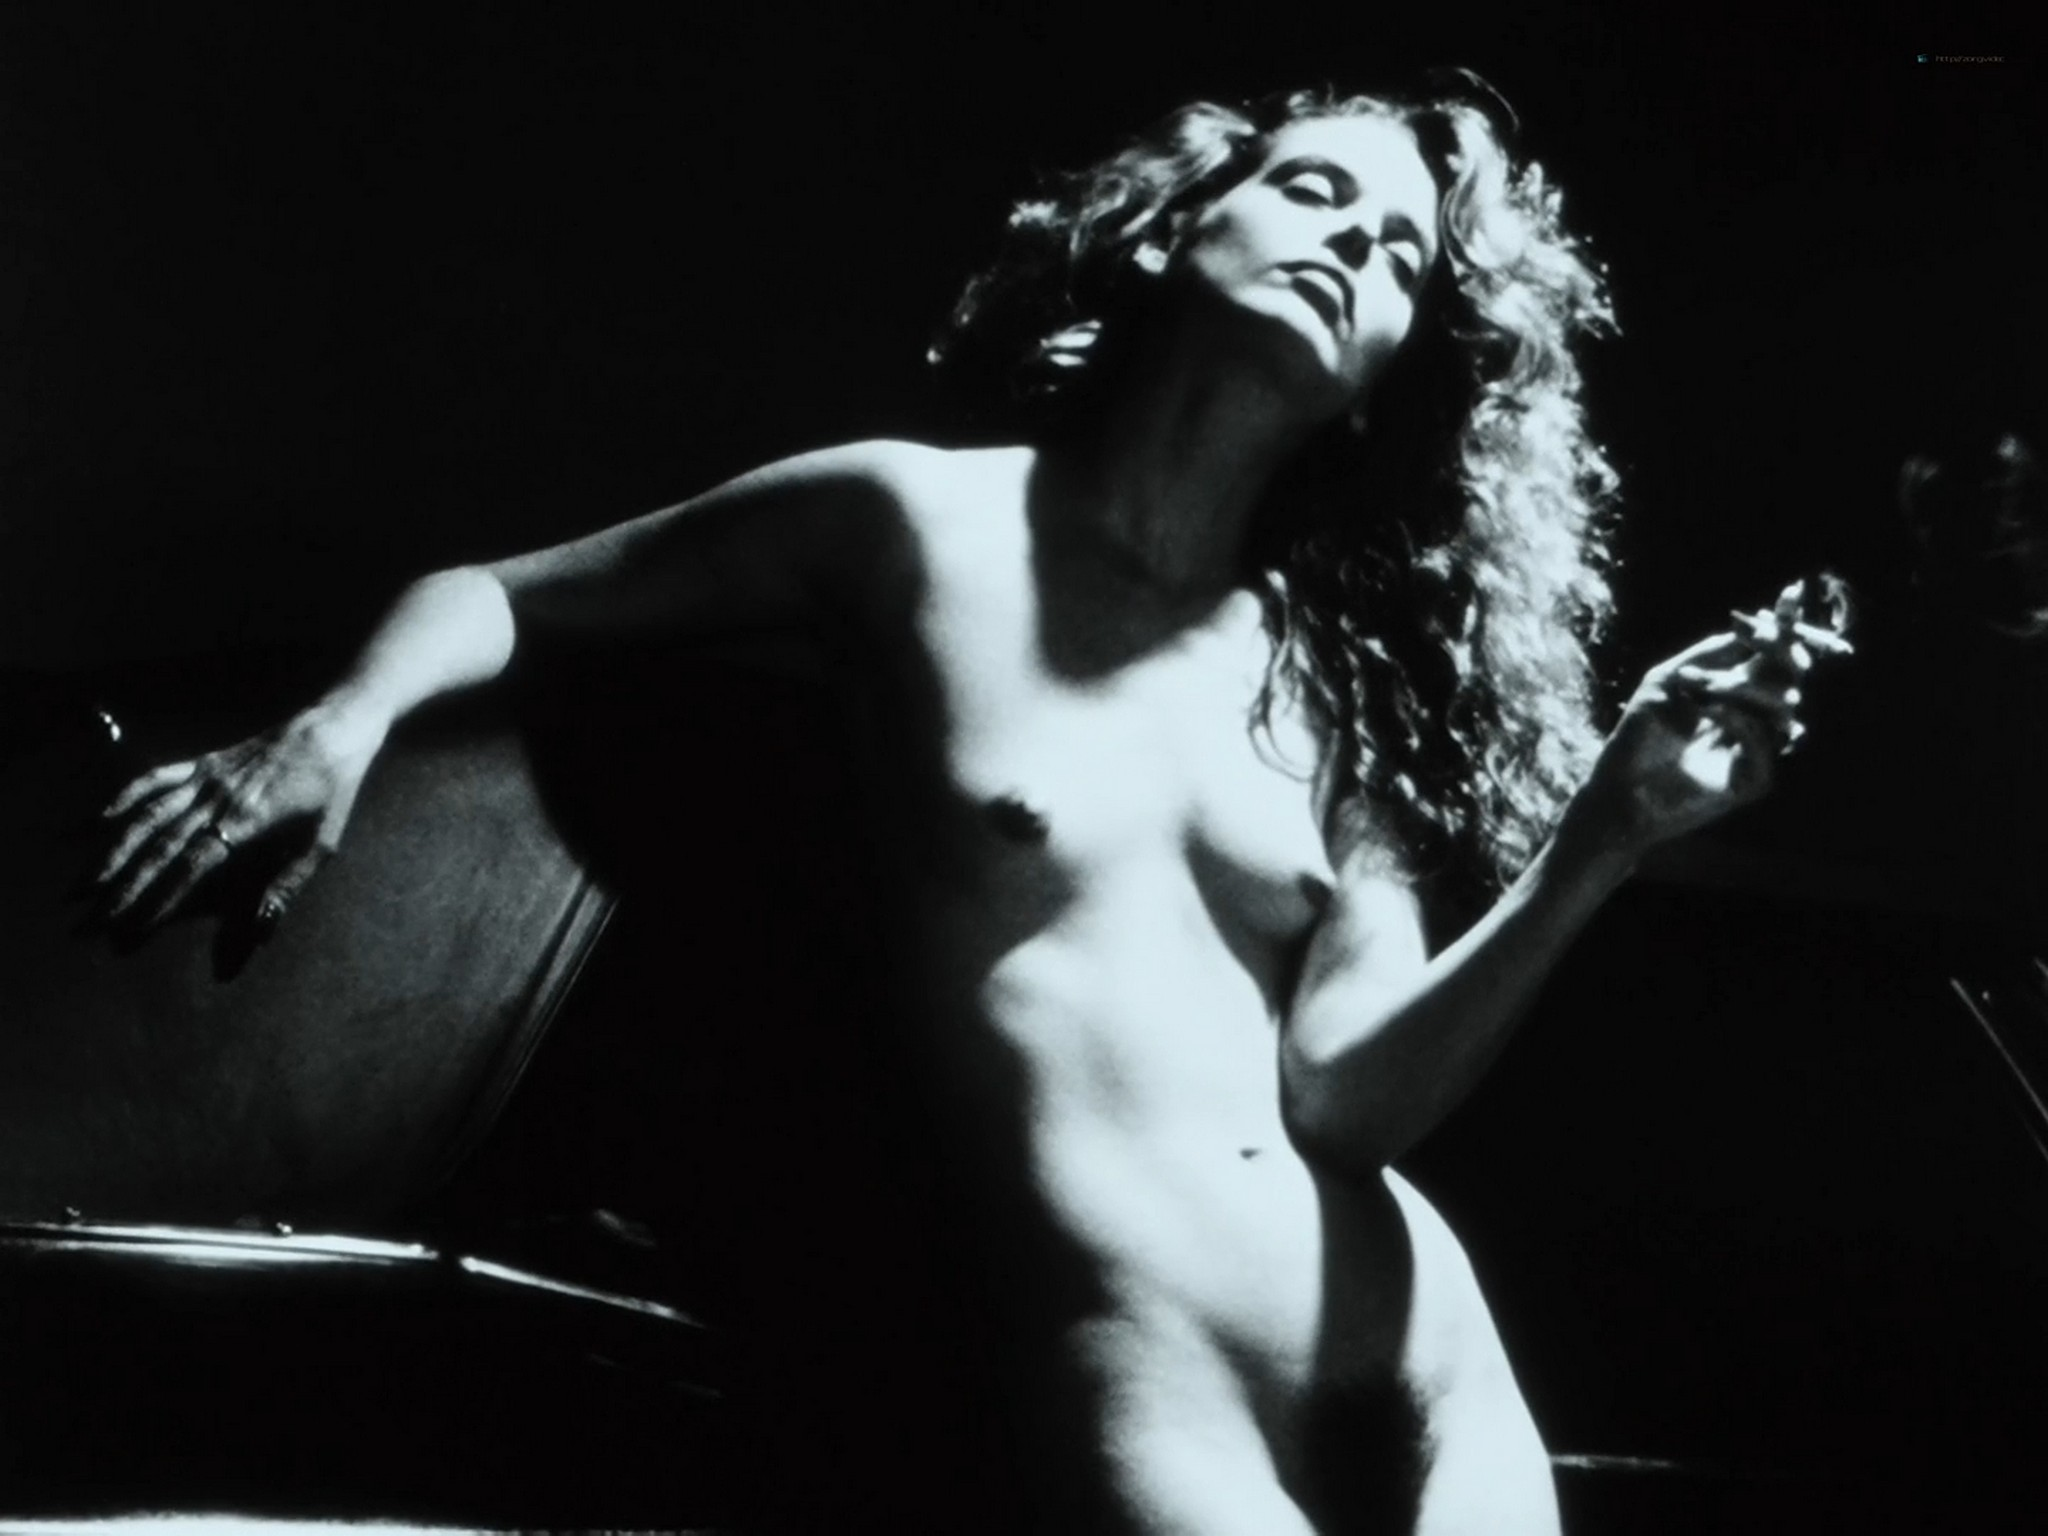 Sigourney Weaver hot Charlotte Rampling nude others nude most full frontal Helmut Newton Frames from the Edge 1989 1080p BluRay 18